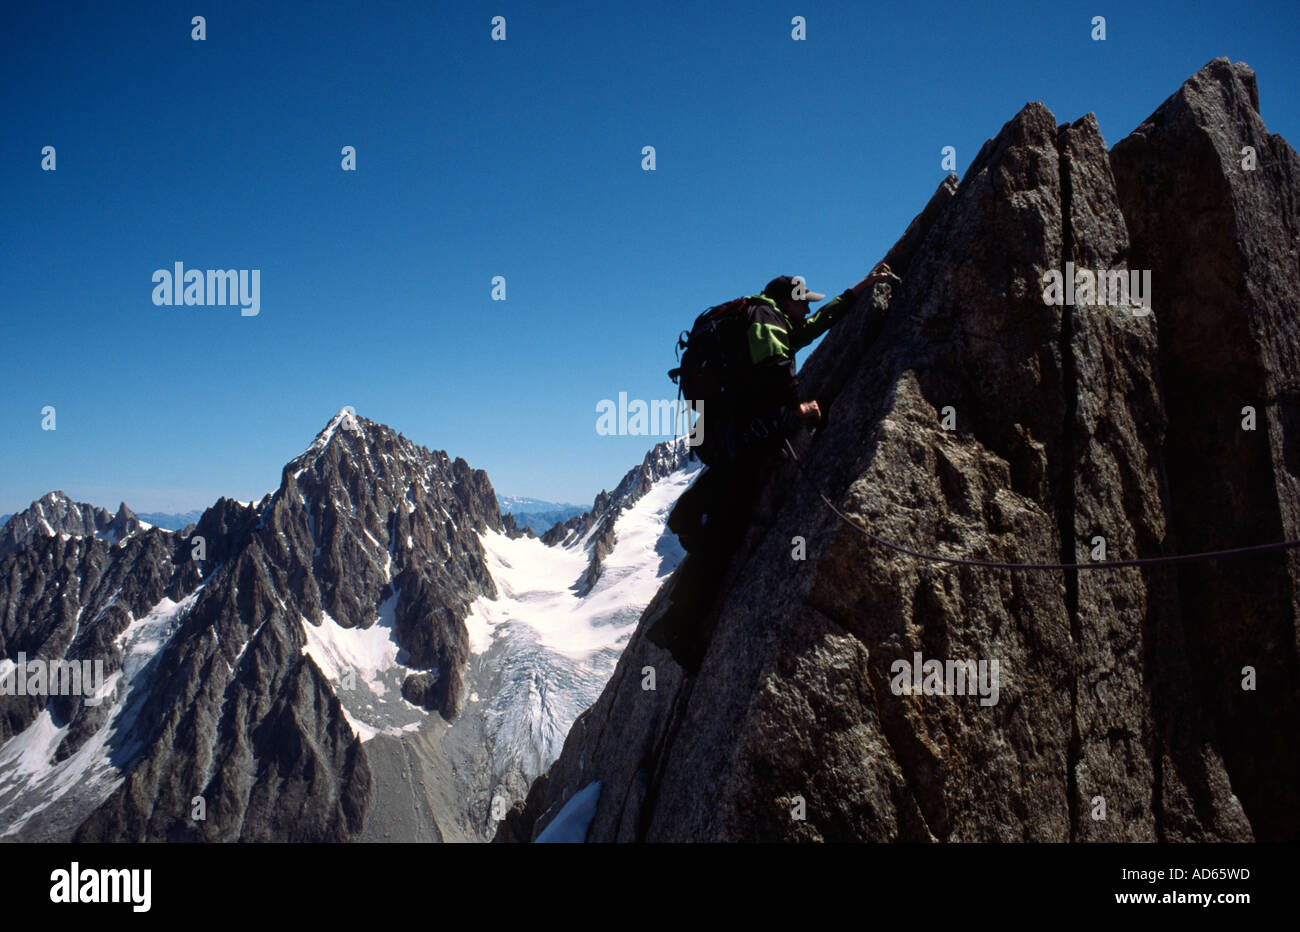 Richard Boud Mountaineering in Chamonix France - Stock Image